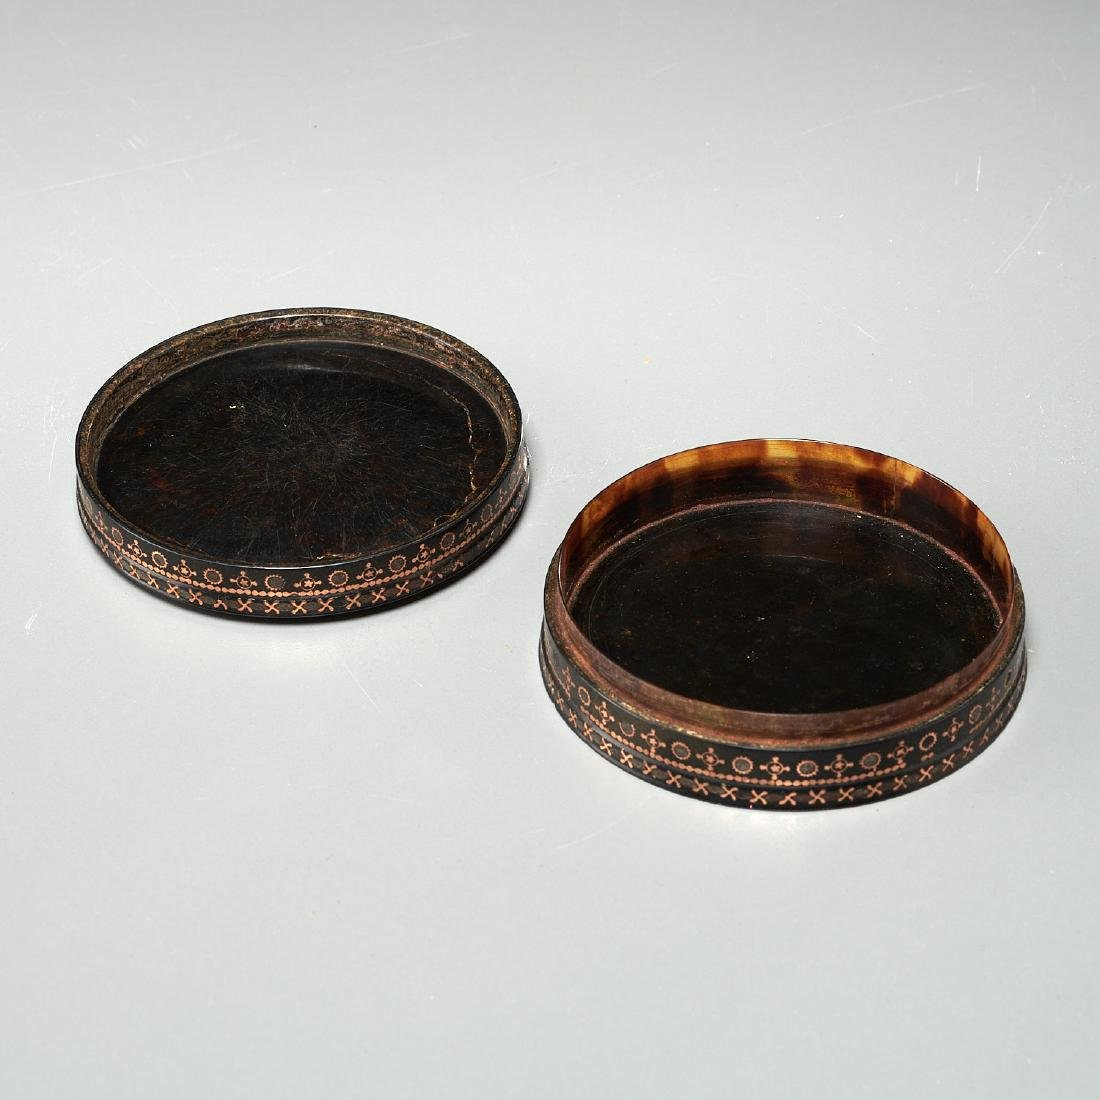 (2) French gold-mounted portrait miniature boxes - 8